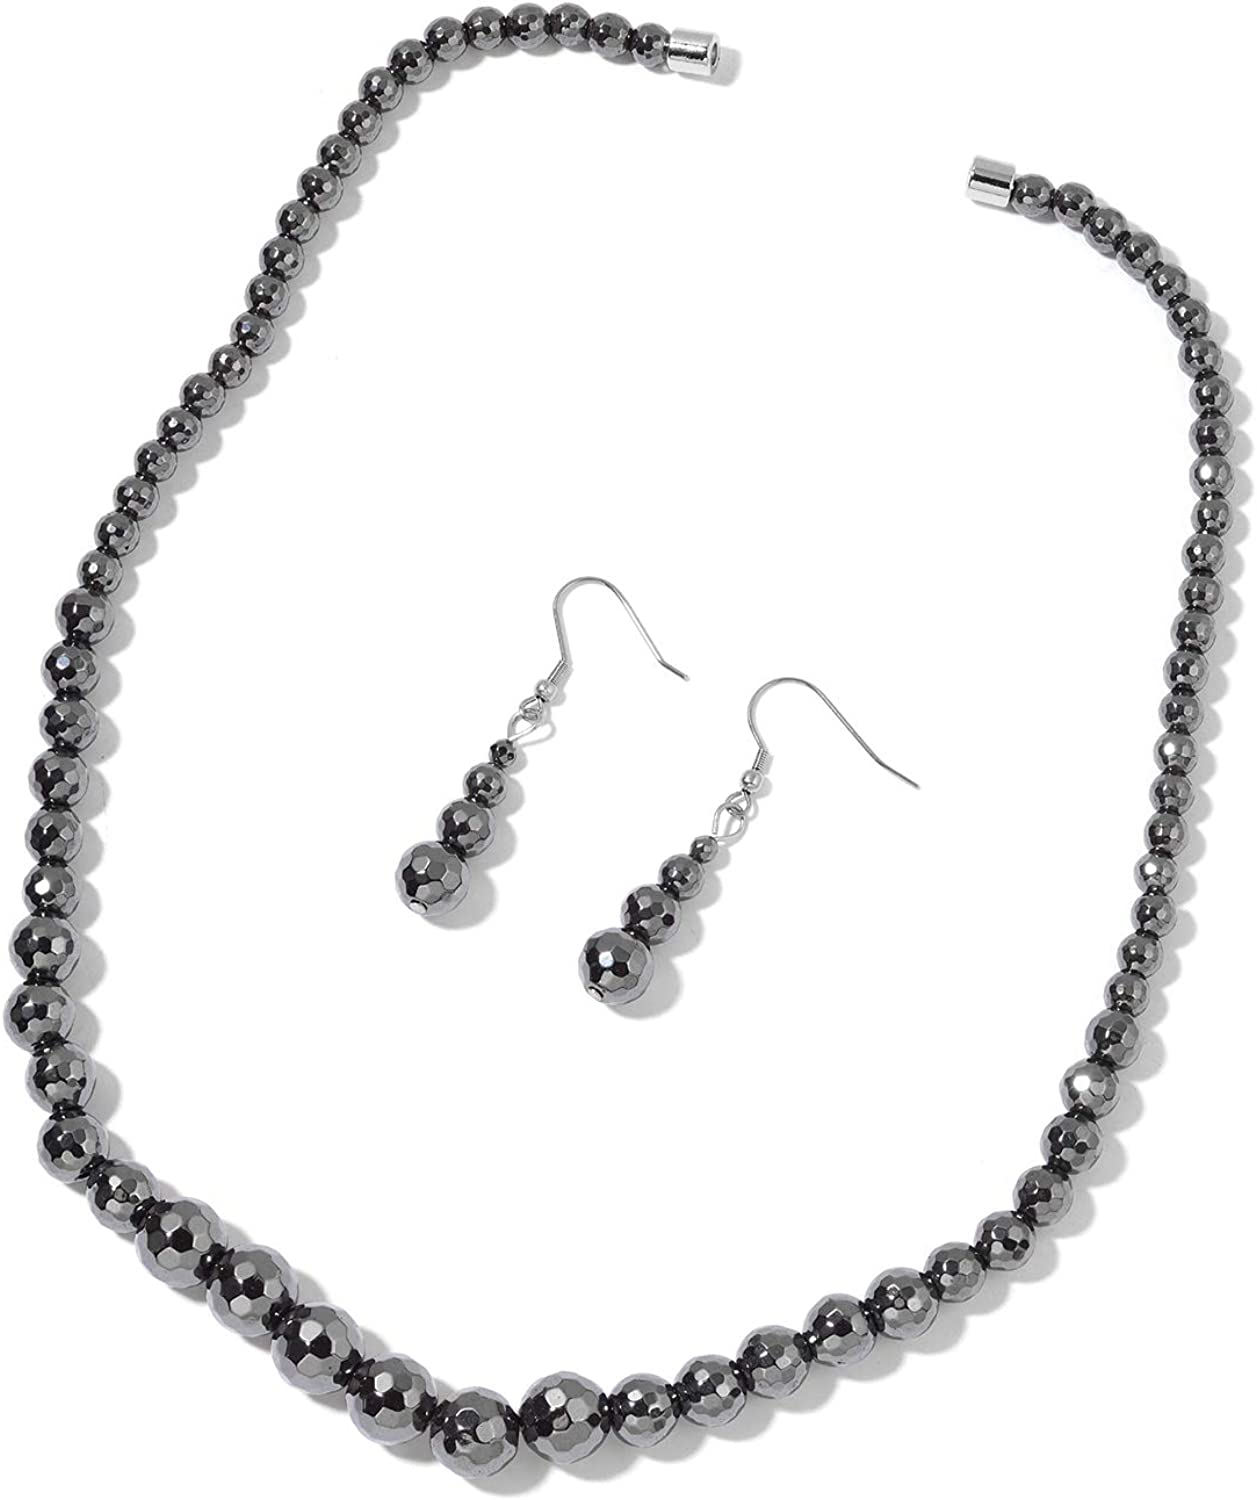 Shop LC Stainless Steel Black Hematite Beads Dangle Drop Earrings Matinee Choker Necklace Fashion Jewelry Gifts Sets for Women 20